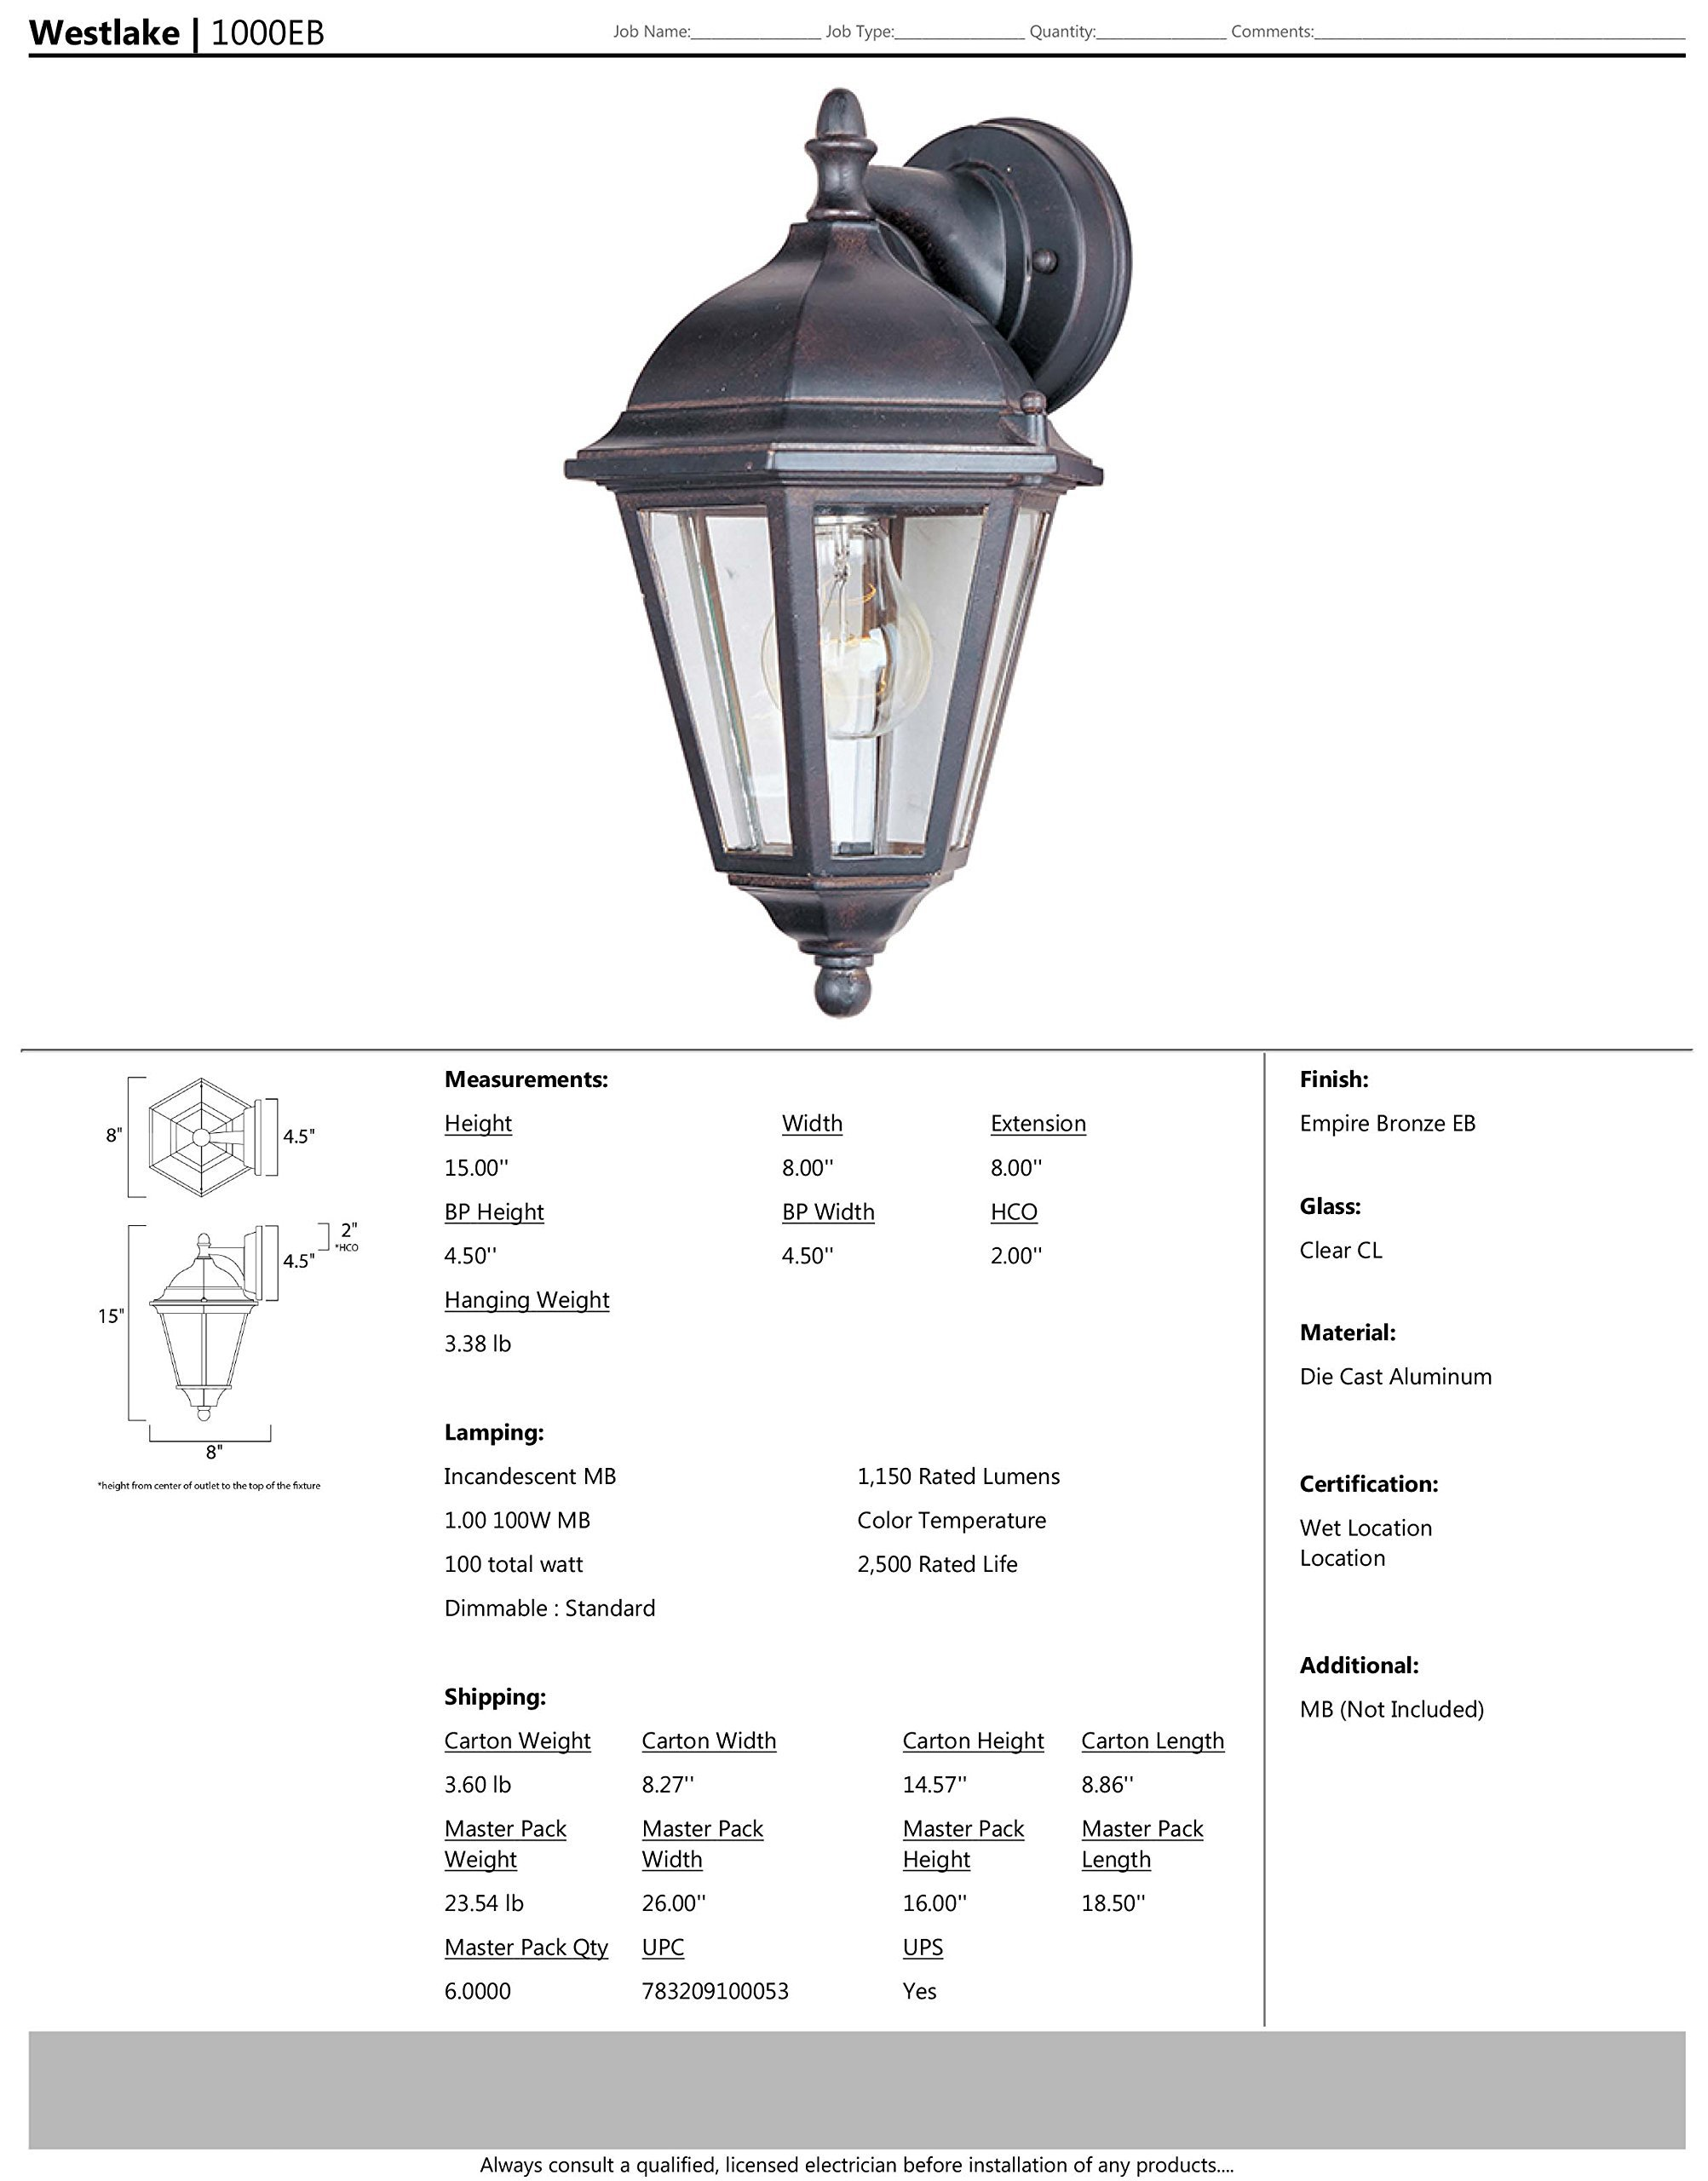 Maxim 1000EB Westlake Cast 1-Light Outdoor Wall Lantern, Empire Bronze Finish, Clear Glass, MB Incandescent Incandescent Bulb , 60W Max., Dry Safety Rating, Standard Dimmable, Glass Shade Material, 6048 Rated Lumens by Maxim Lighting (Image #2)